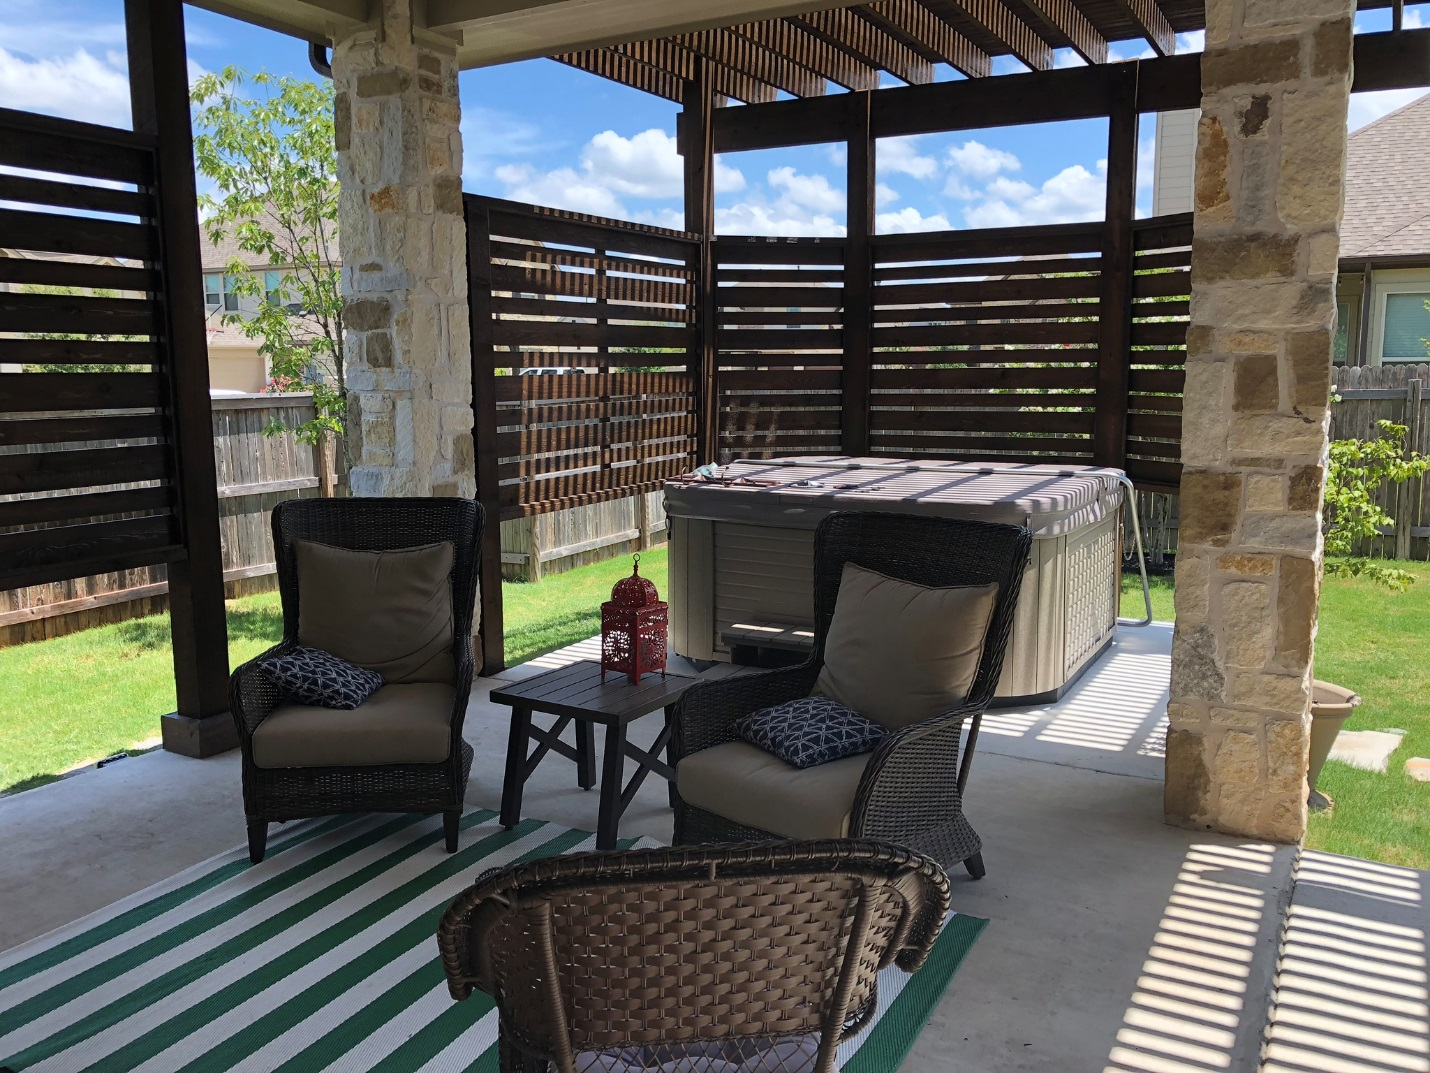 Archadeck-of-Austin-has-the-right-design-to-fit-your-outdoor-living-needs